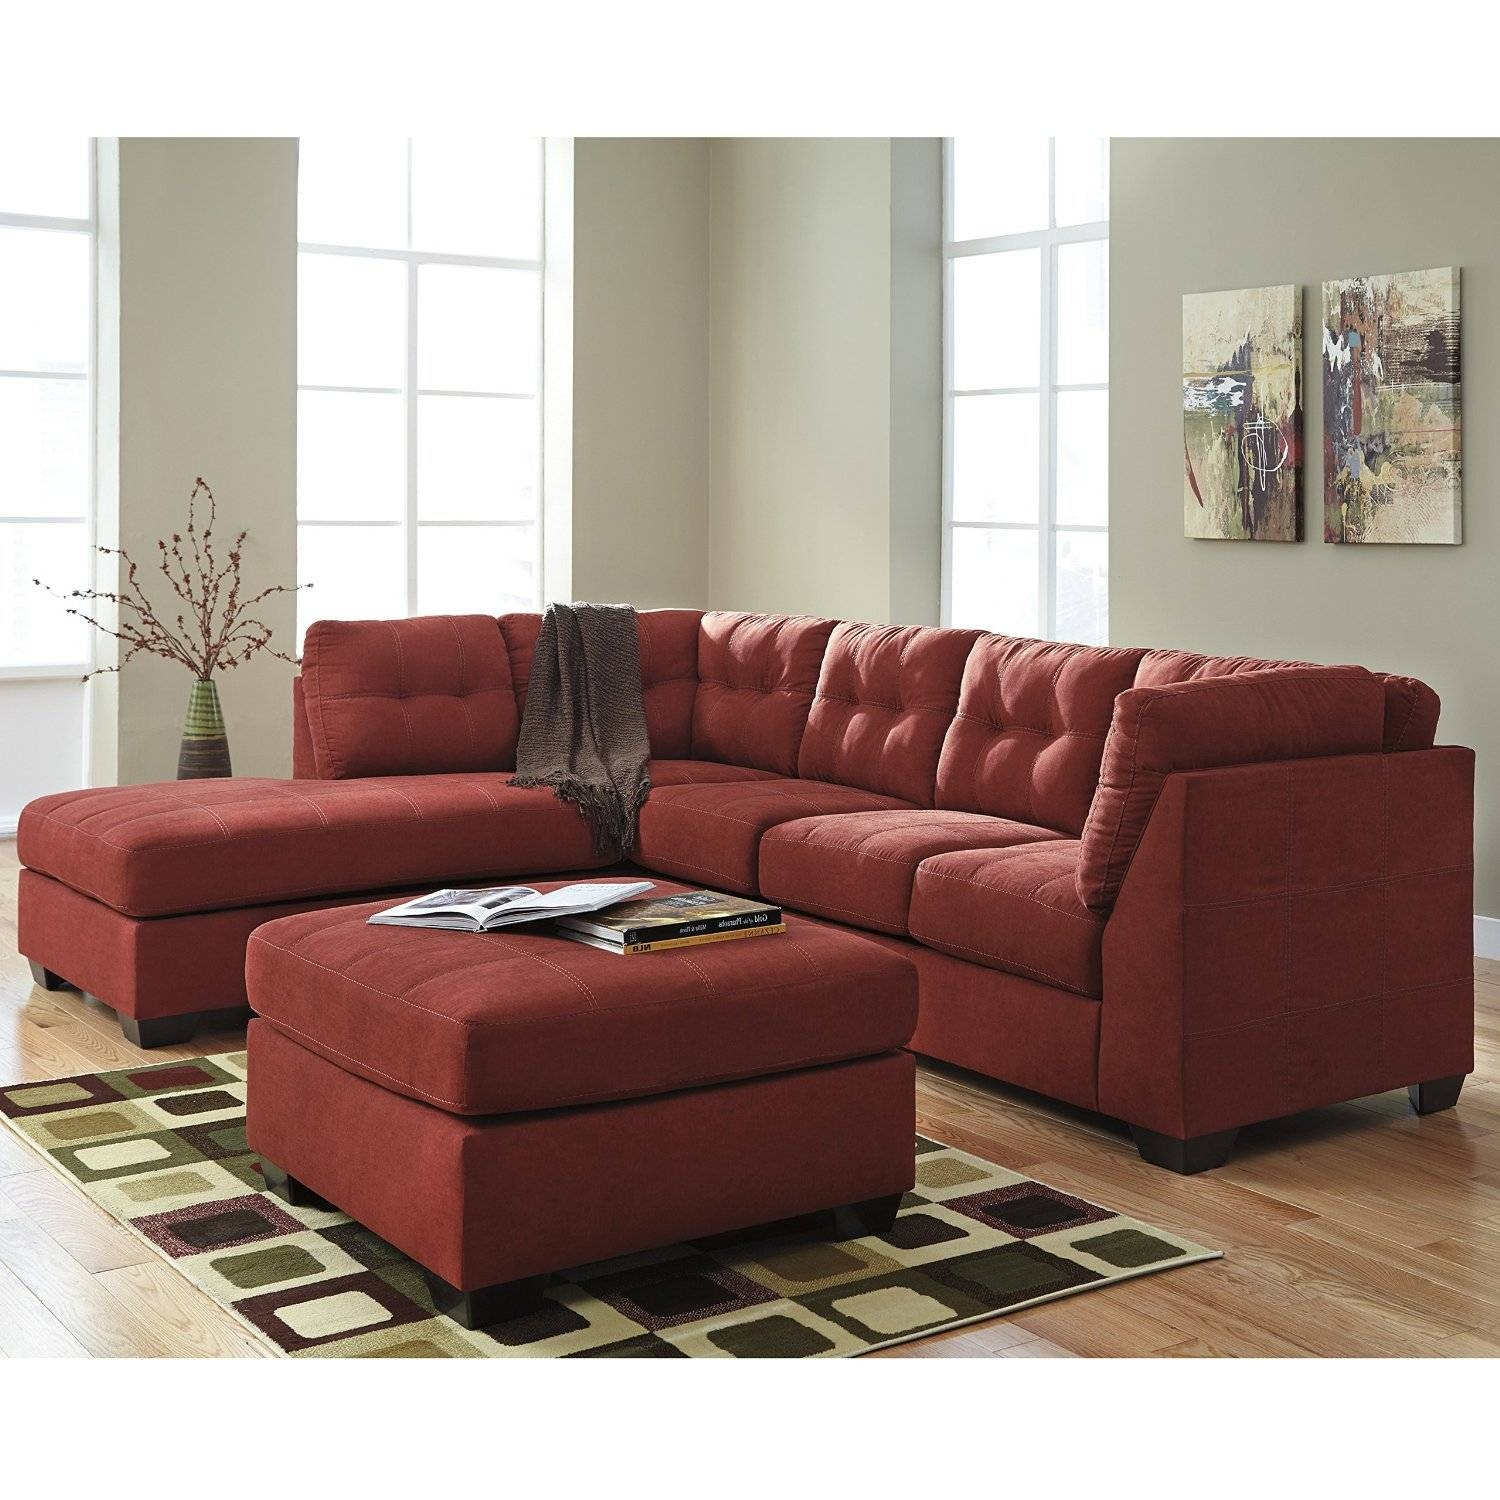 Berkline Sectional Sofa - Bible-Saitama intended for Berkline Sectional Sofa (Image 8 of 30)